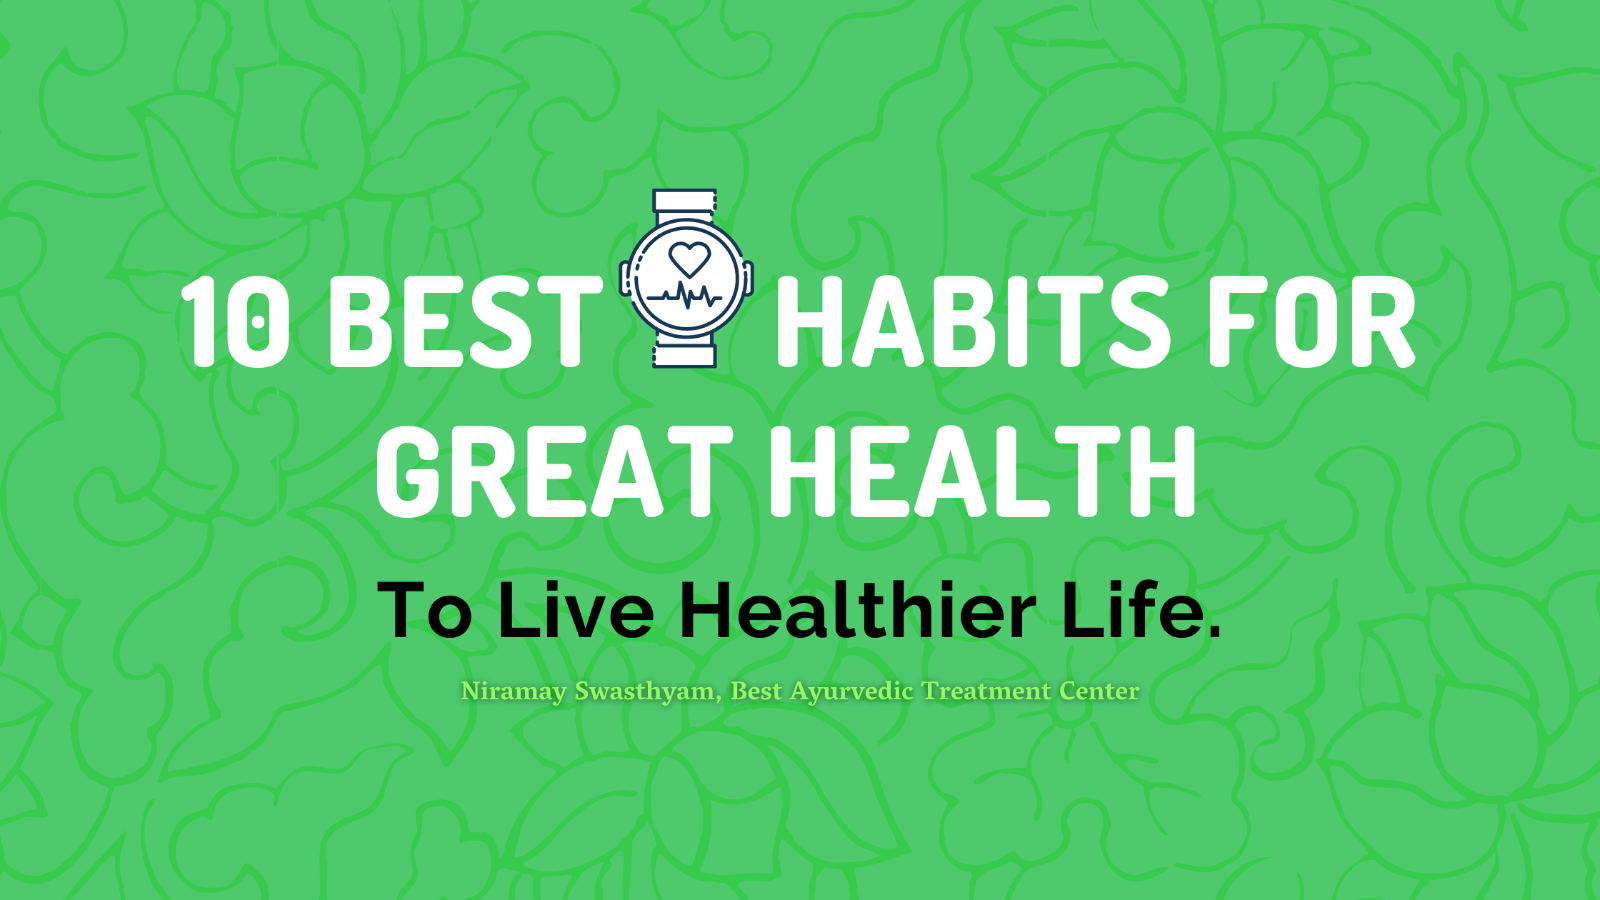 best habits for great health according to Ayurveda.